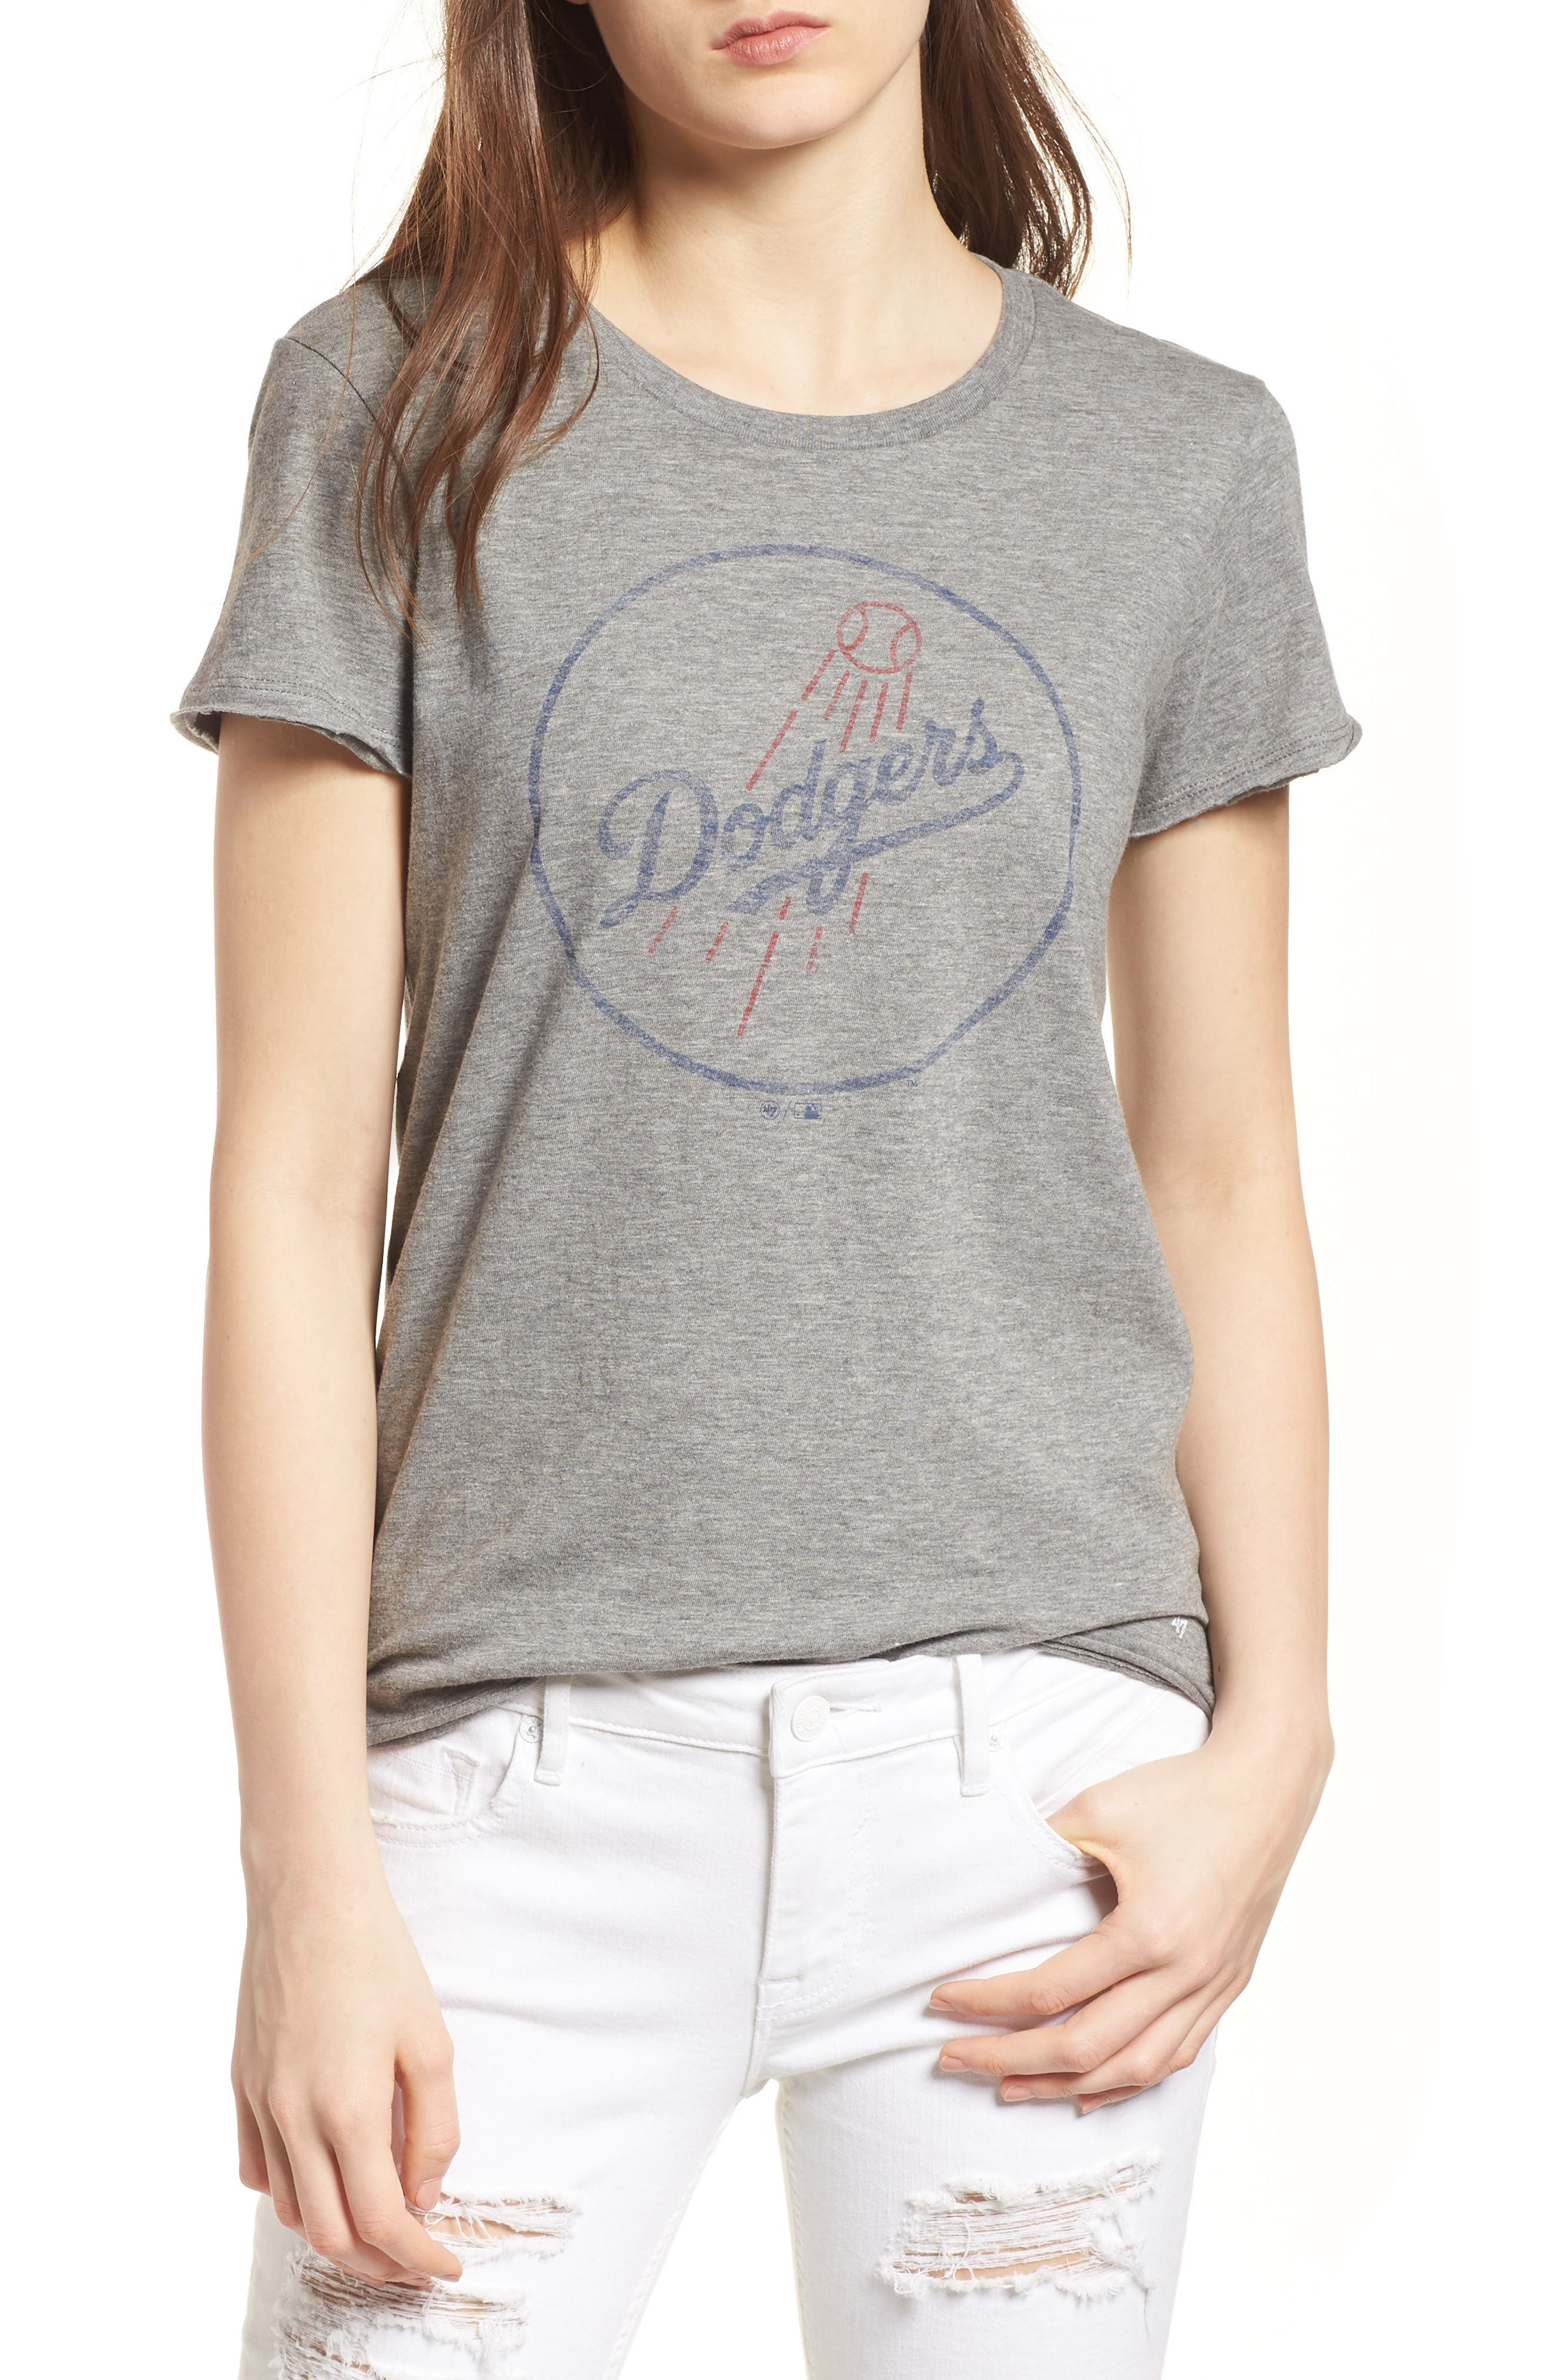 Los Angeles Dodgers Fader Letter Tee,                         Main,                         color, 021